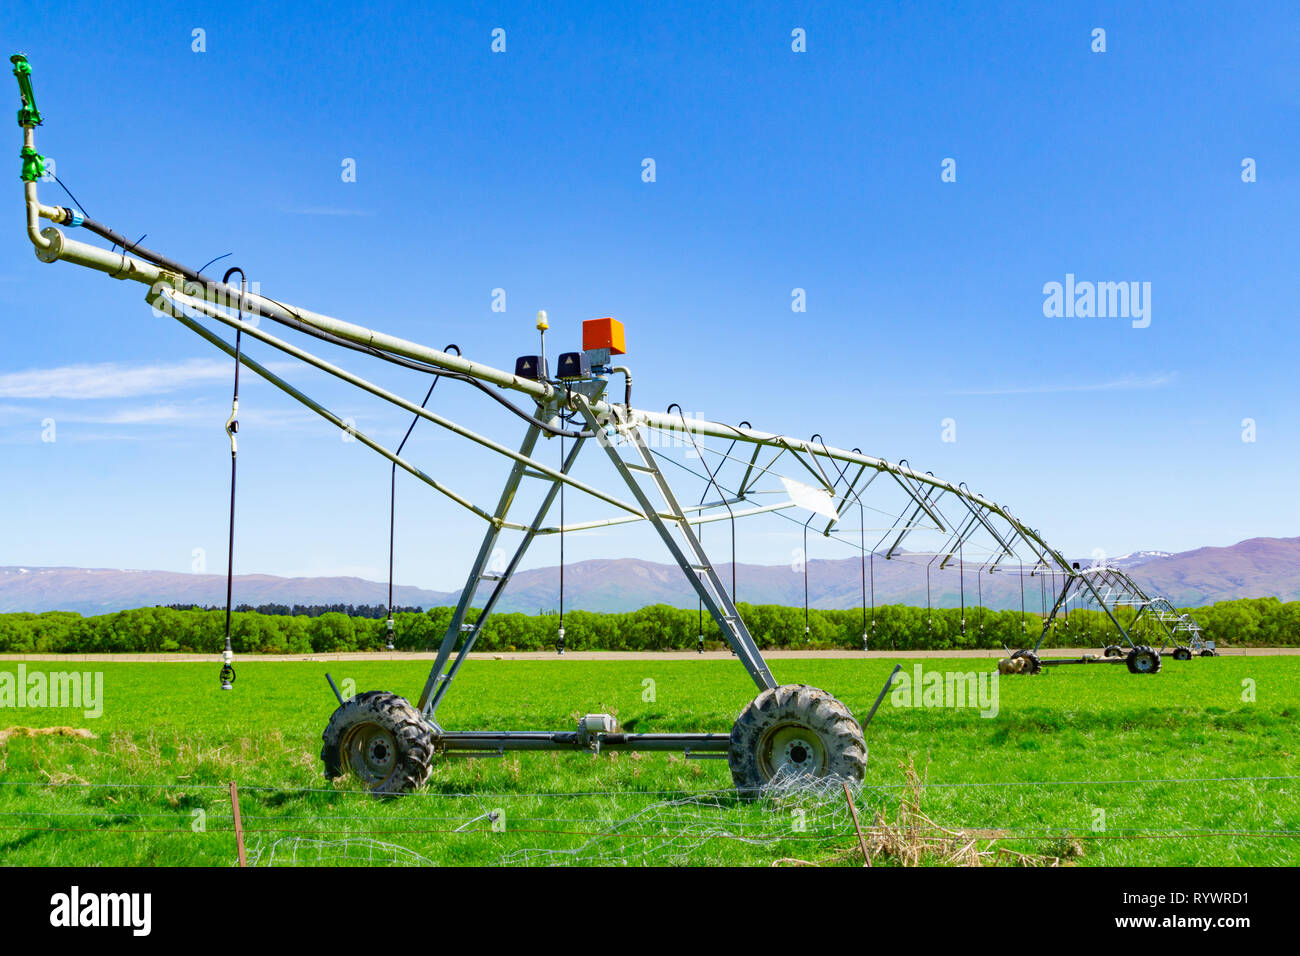 Large centre pivot irrigation system running on a farm in Canterbury, New Zealand. Long movable booms of the water distribution plant stretch across f - Stock Image